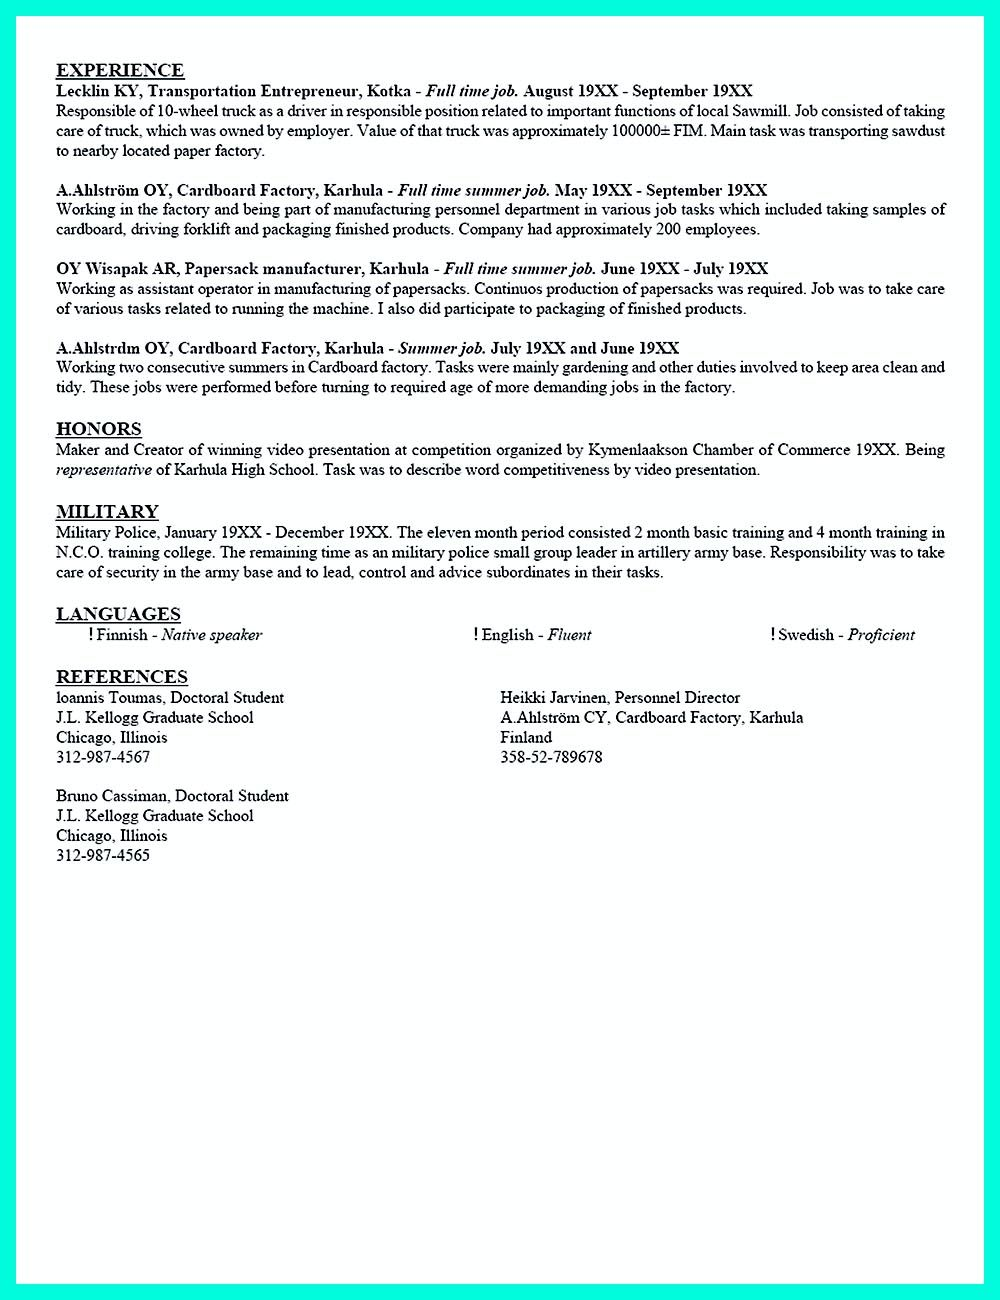 Current College Student Resume Examples Current College Student Resume Is Designed For Fresh Graduate